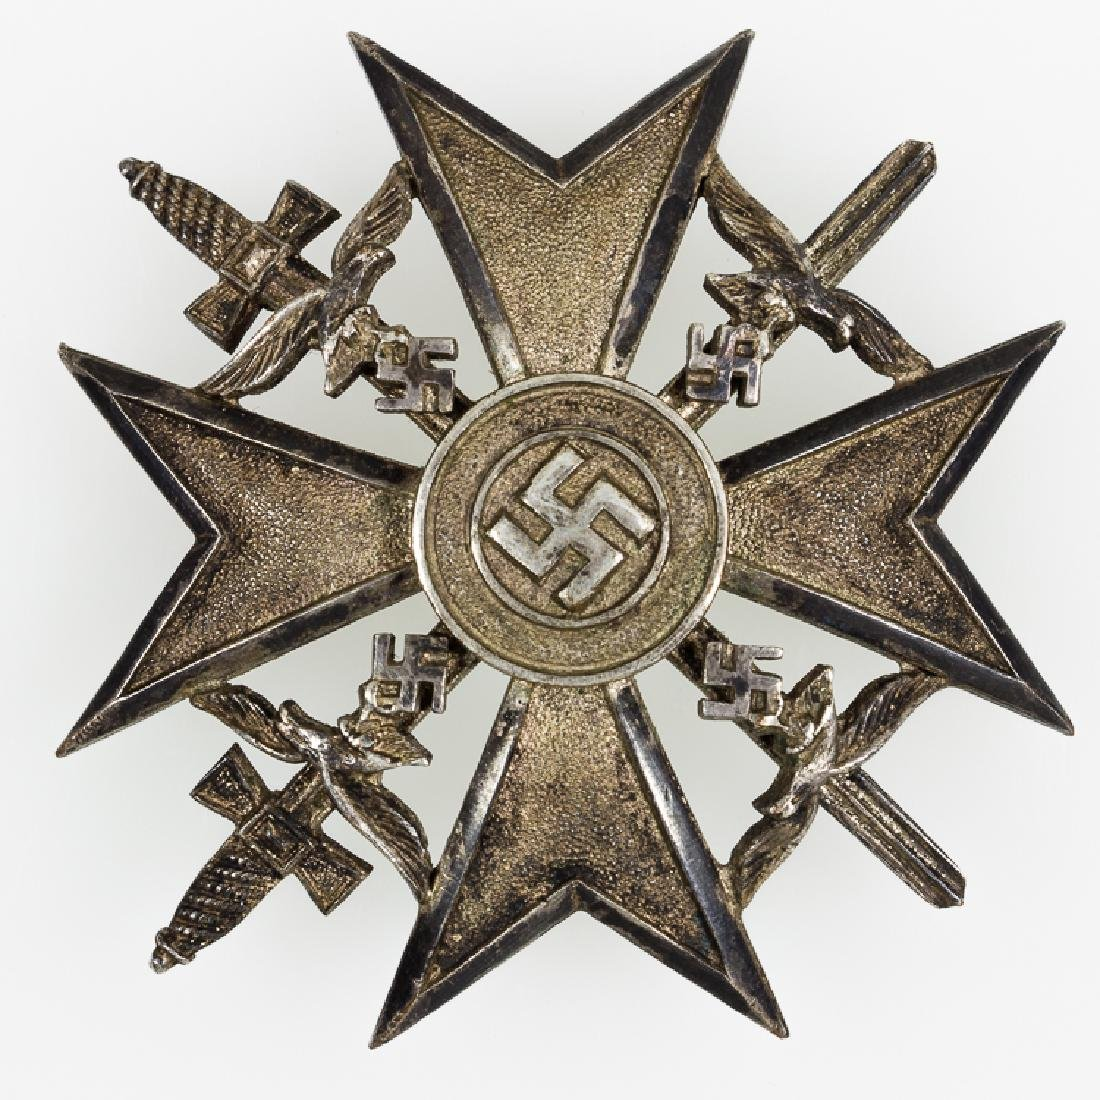 SPANISH CROSS IN SILVER WITH SWORDS